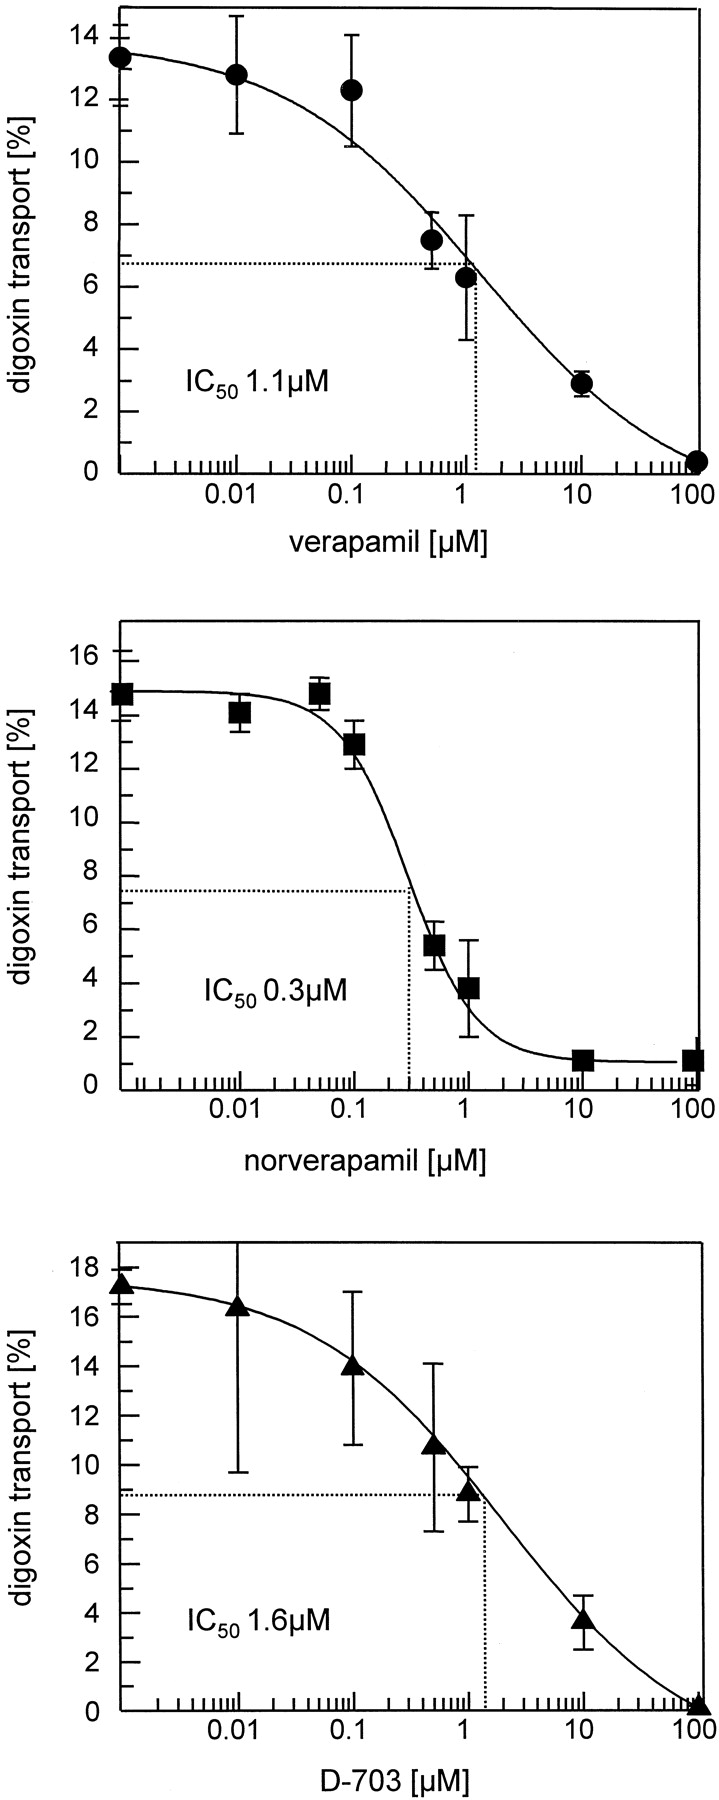 Characterization of the Major Metabolites of Verapamil as